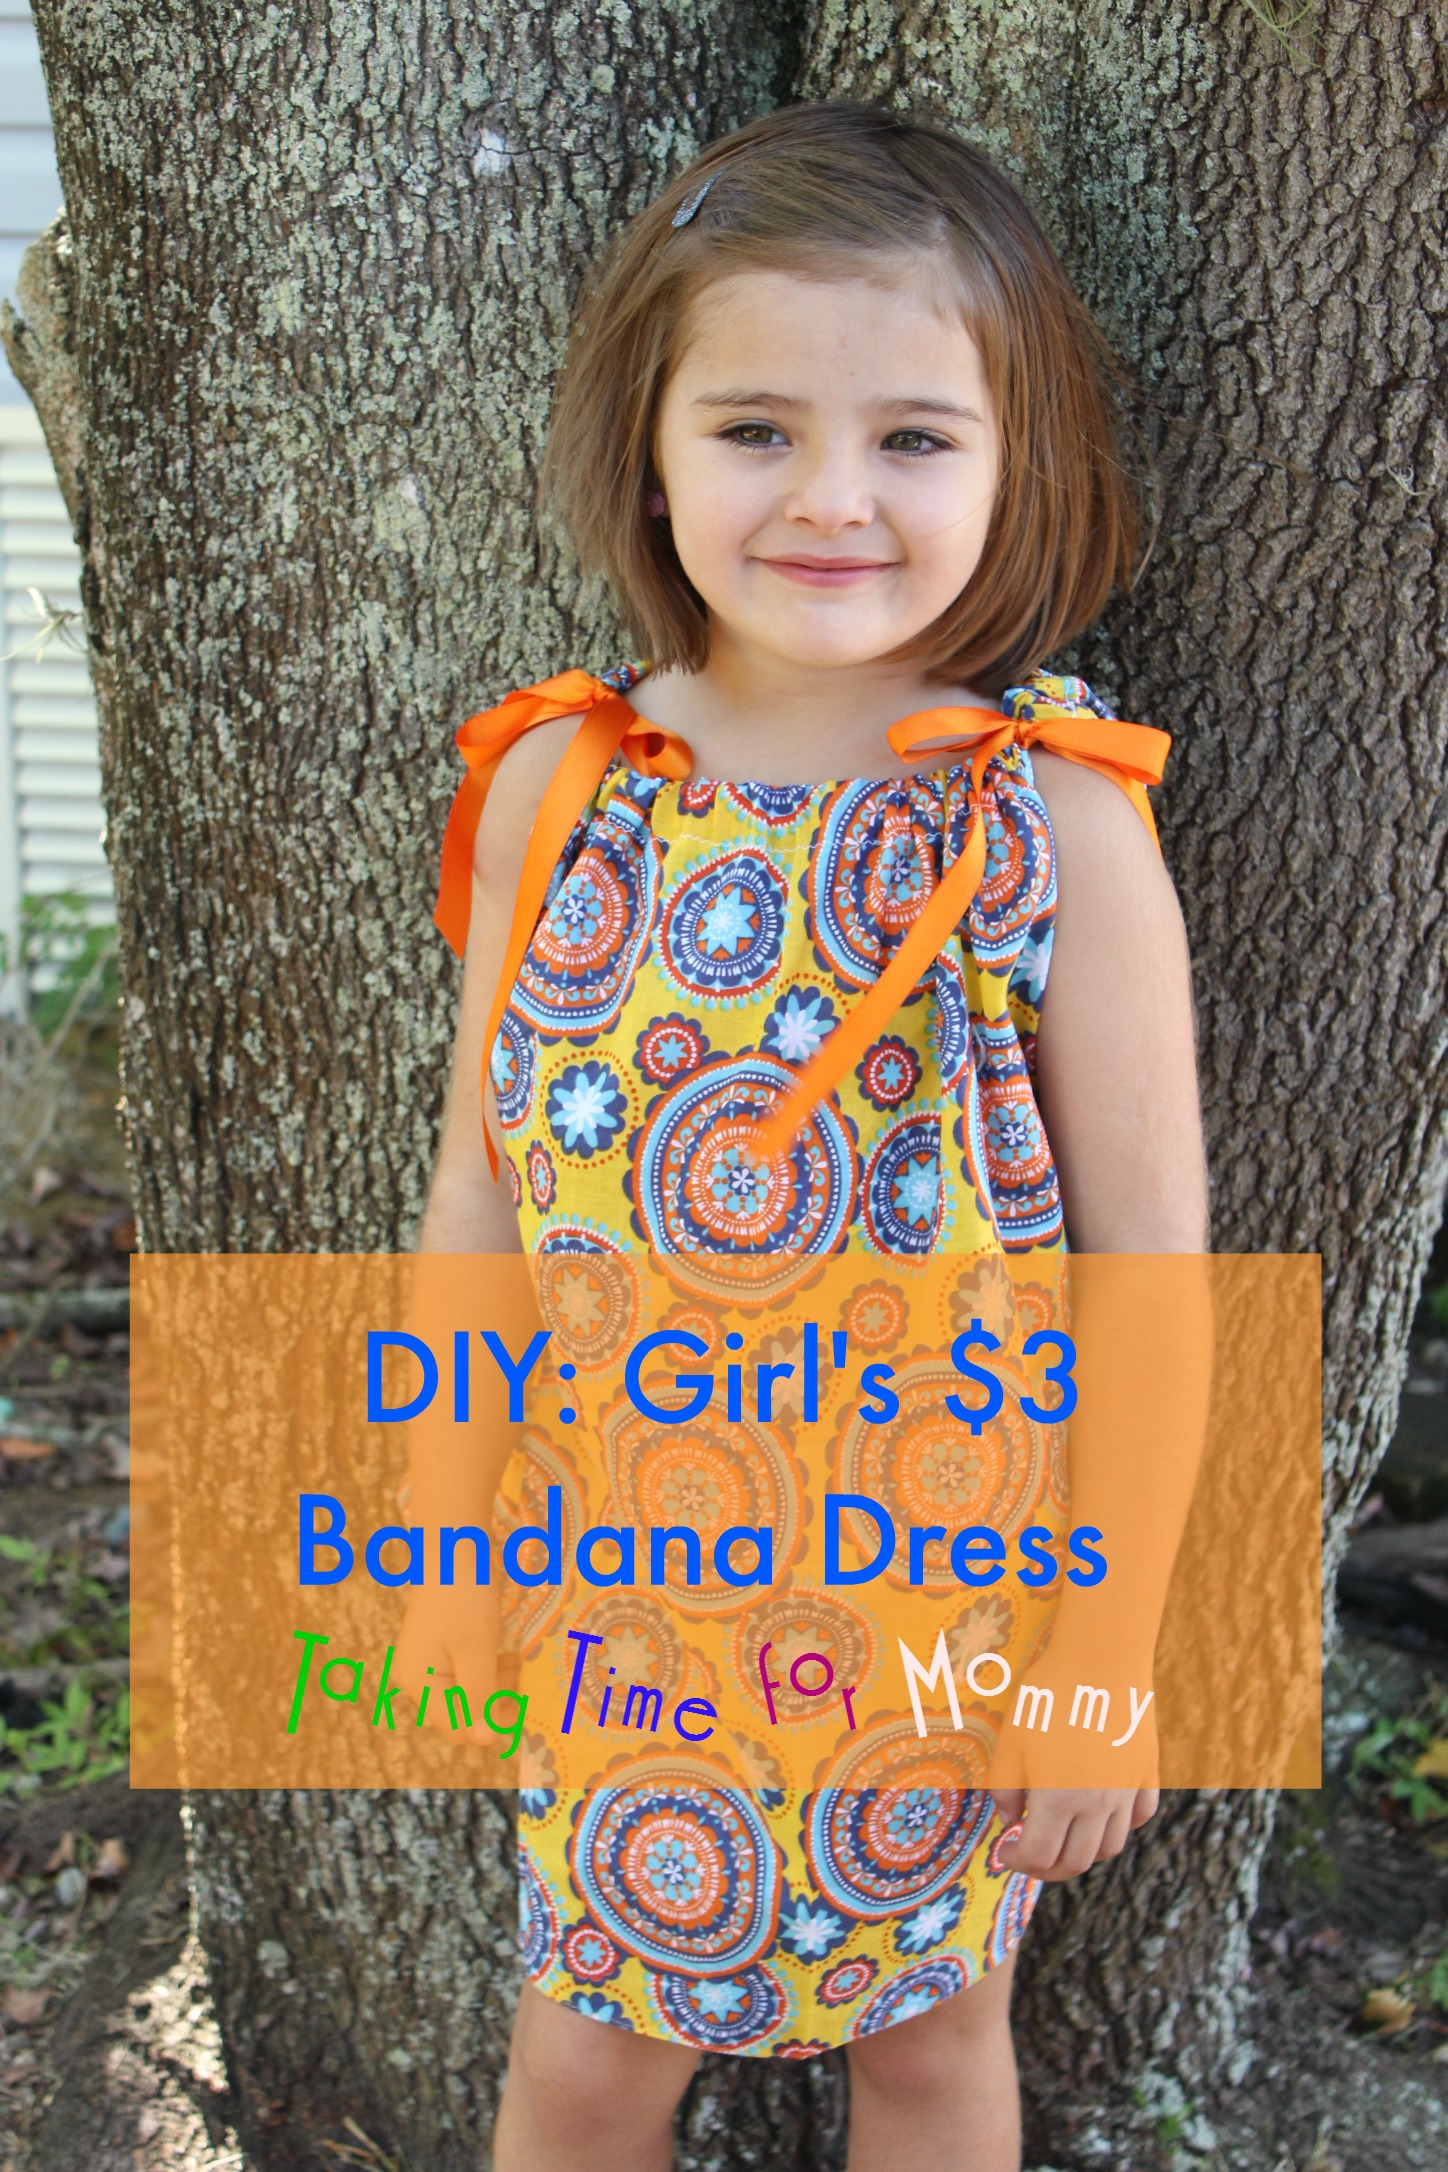 3 Easy Diy Storage Ideas For Small Kitchen: Easy To Make DIY: Girl's Bandana Dress